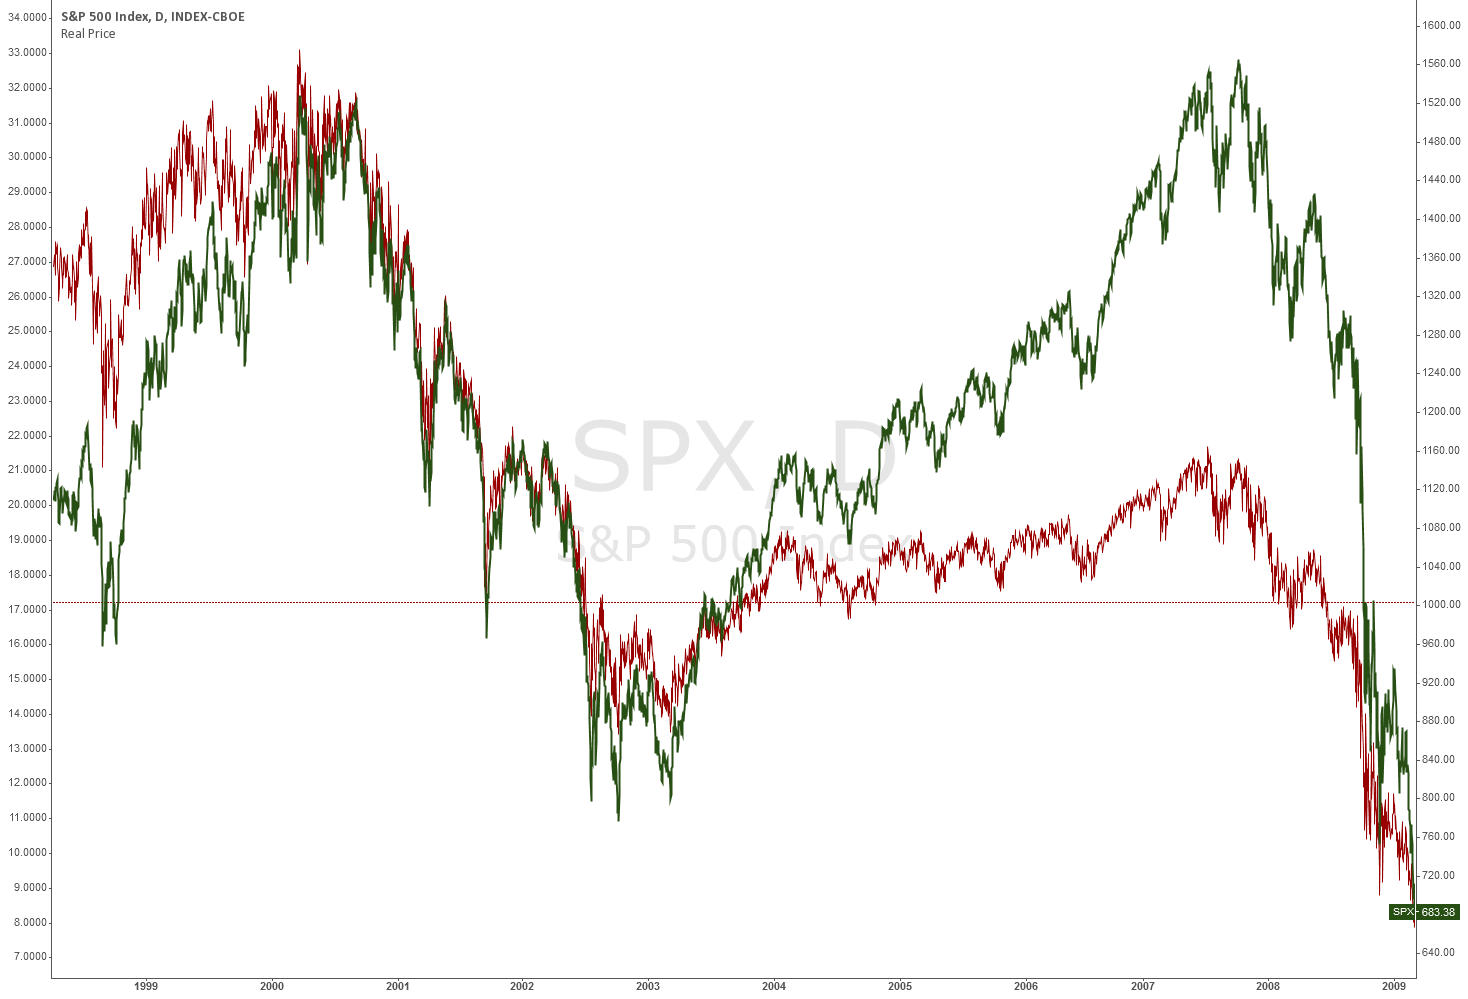 Real Price of SPX compared to M2 money supply